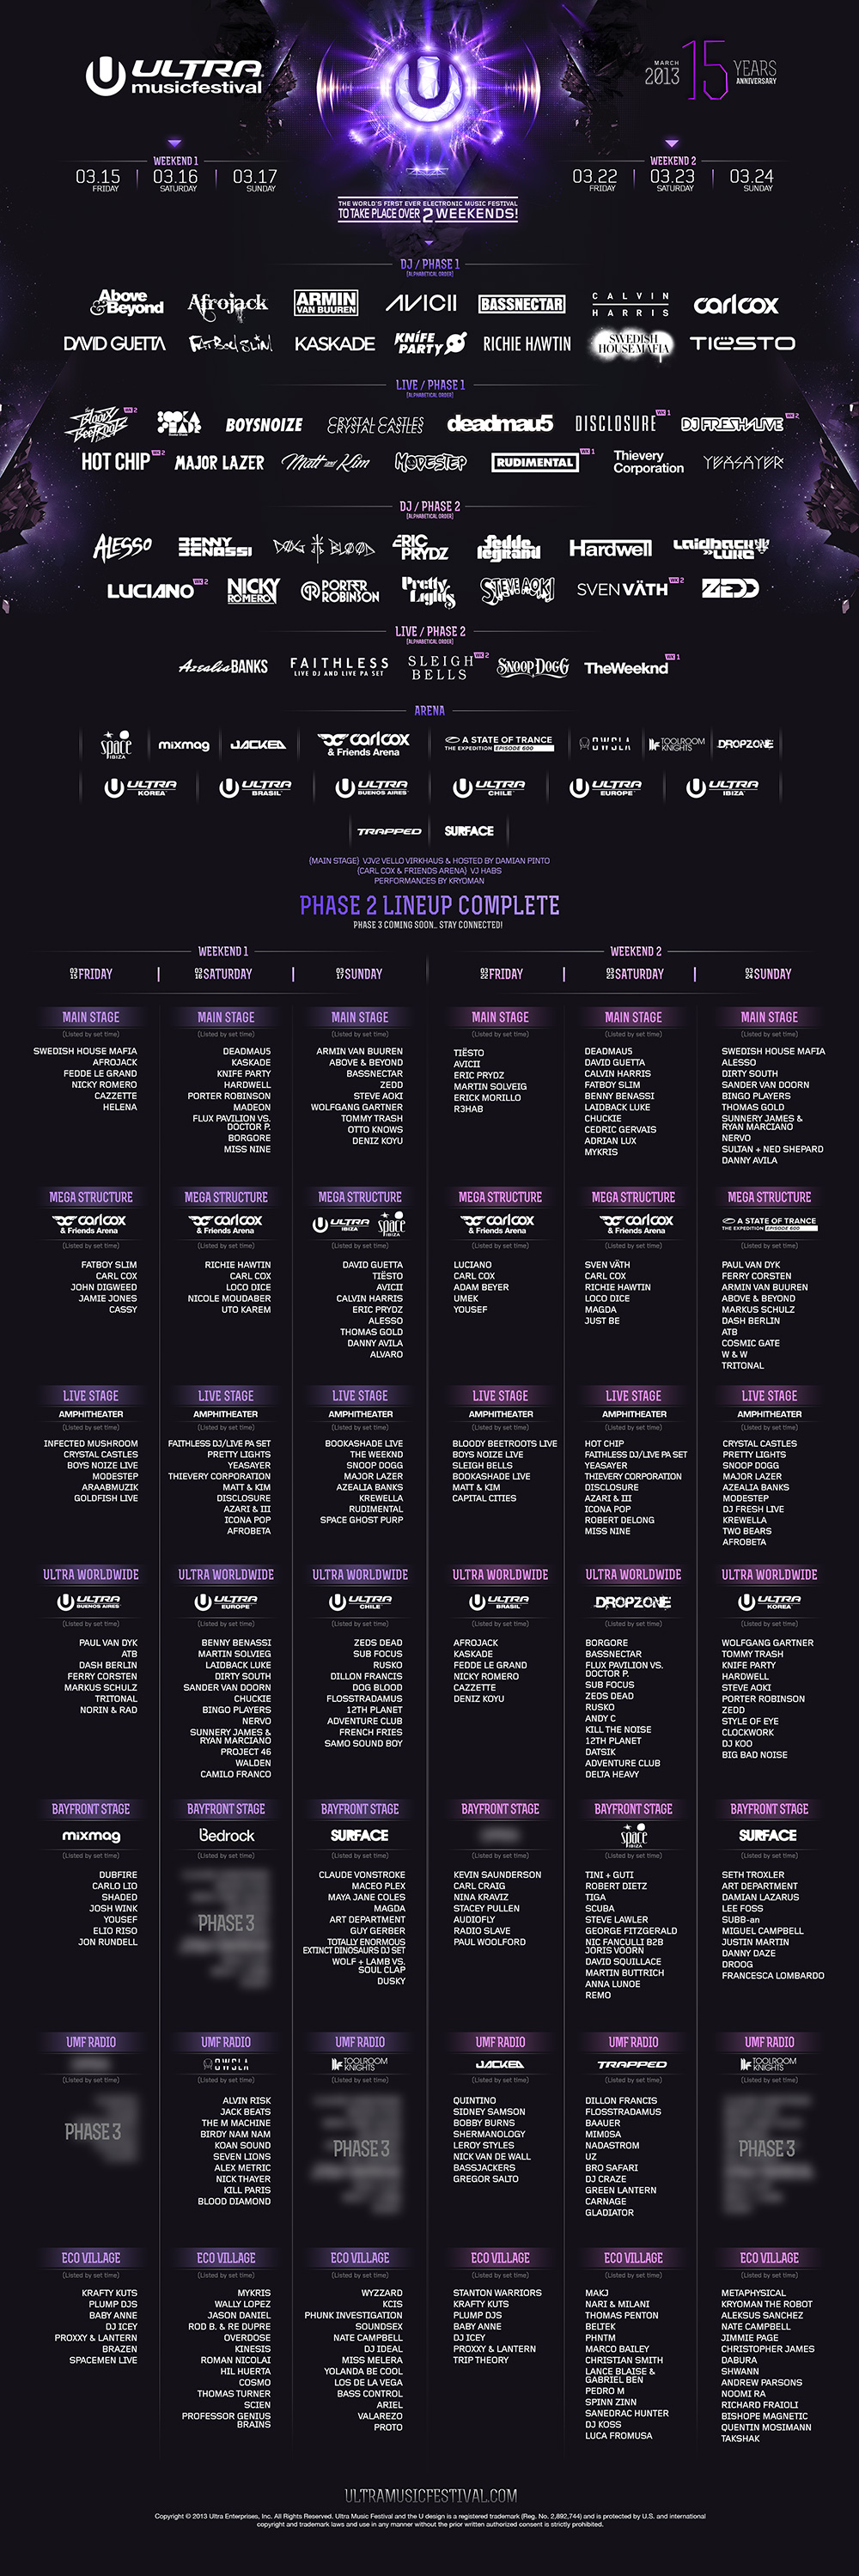 Ultra 2013 Line up (phase 2)